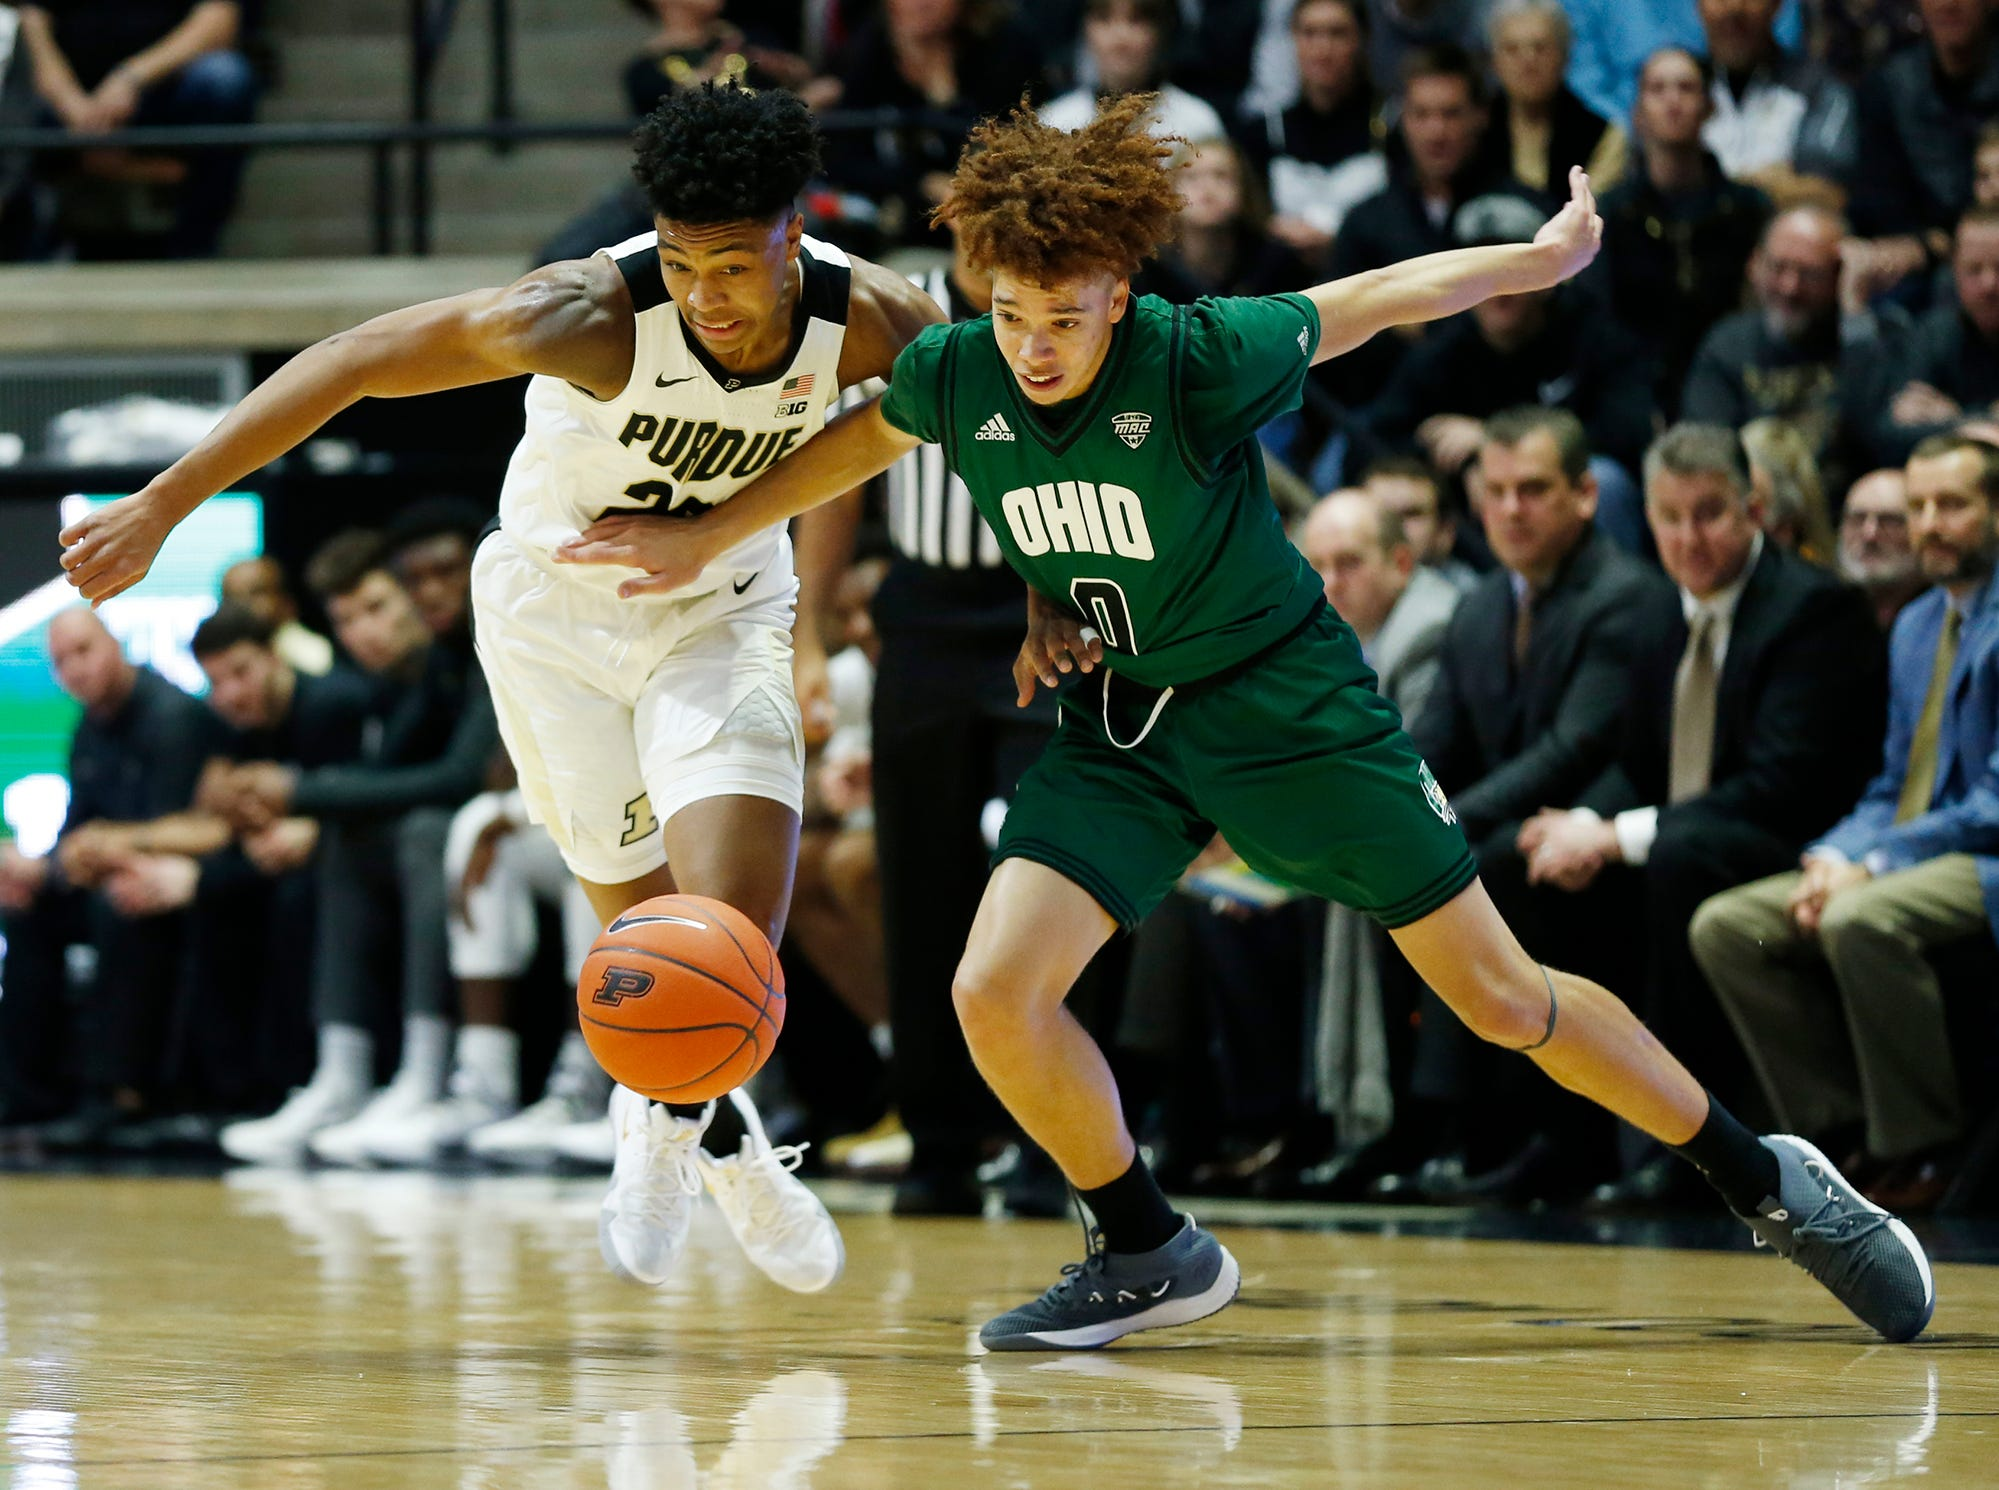 Nojel Eastern of Purdue steals the ball from Jason Preston of Ohio Thursday, December 20, 2018, at Mackey Arena. Purdue defeated Ohio 95-67.